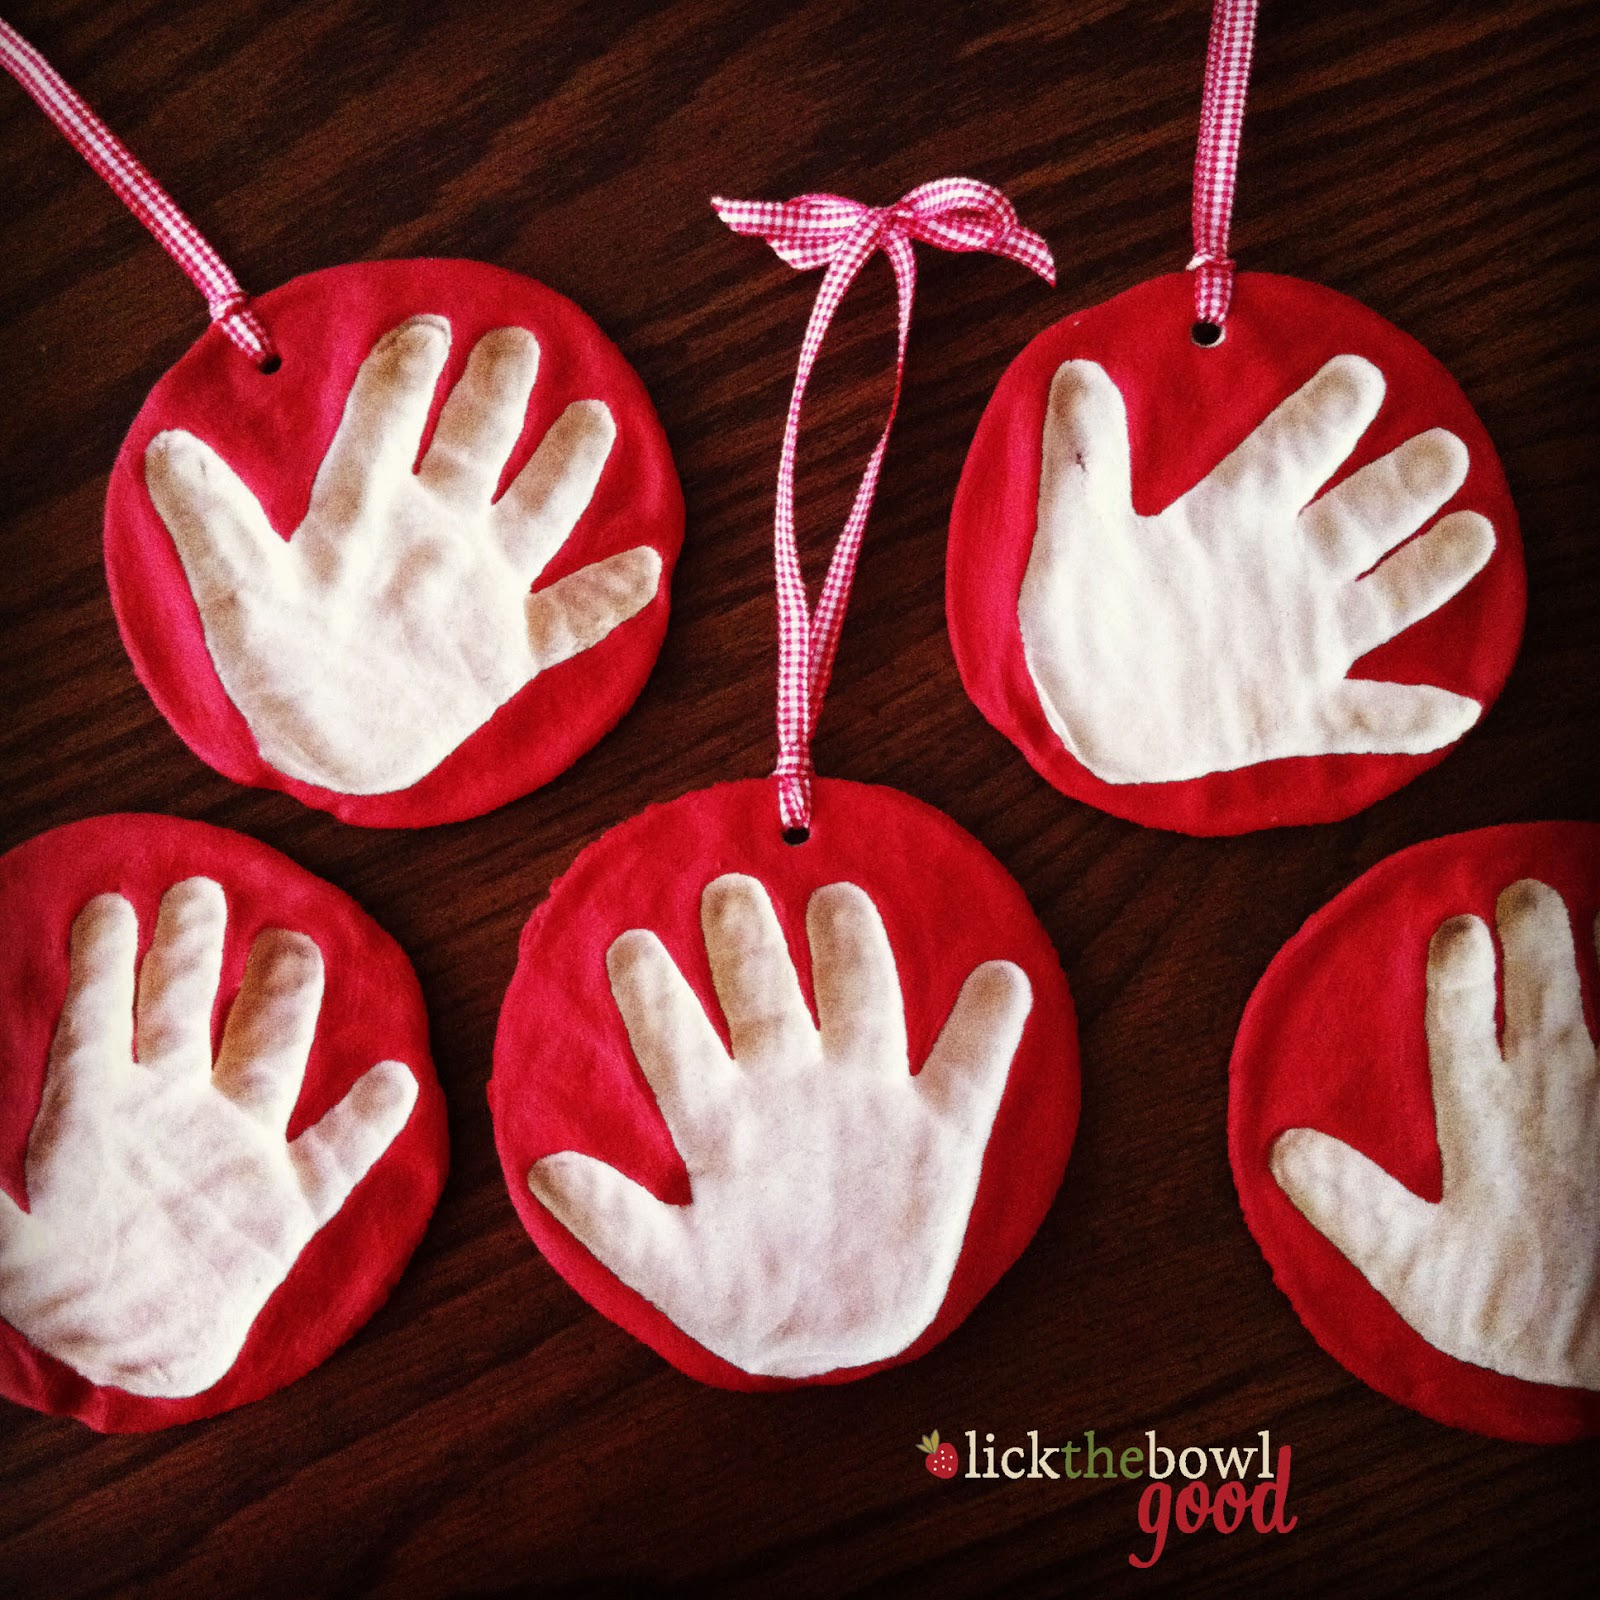 Lick The Bowl Good: Last Minute Treats And Handmade Gifts